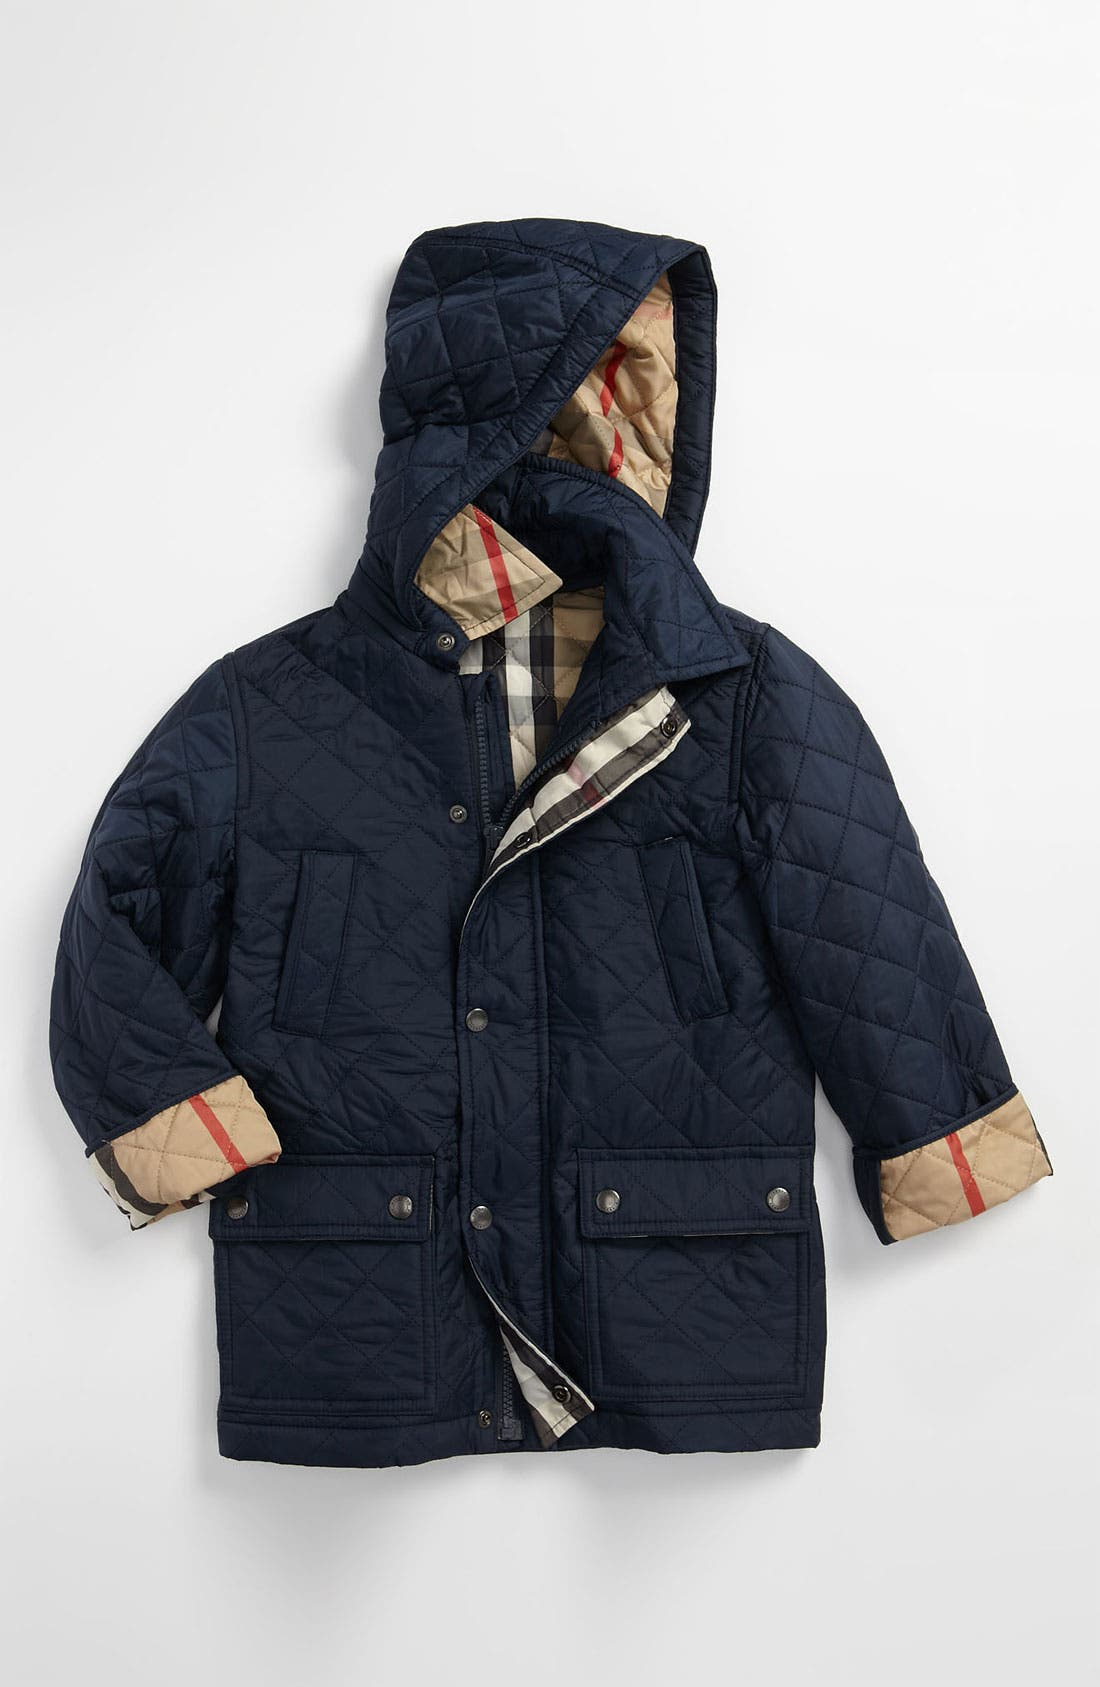 Alternate Image 1 Selected - Burberry Quilted Jacket (Little Boys)